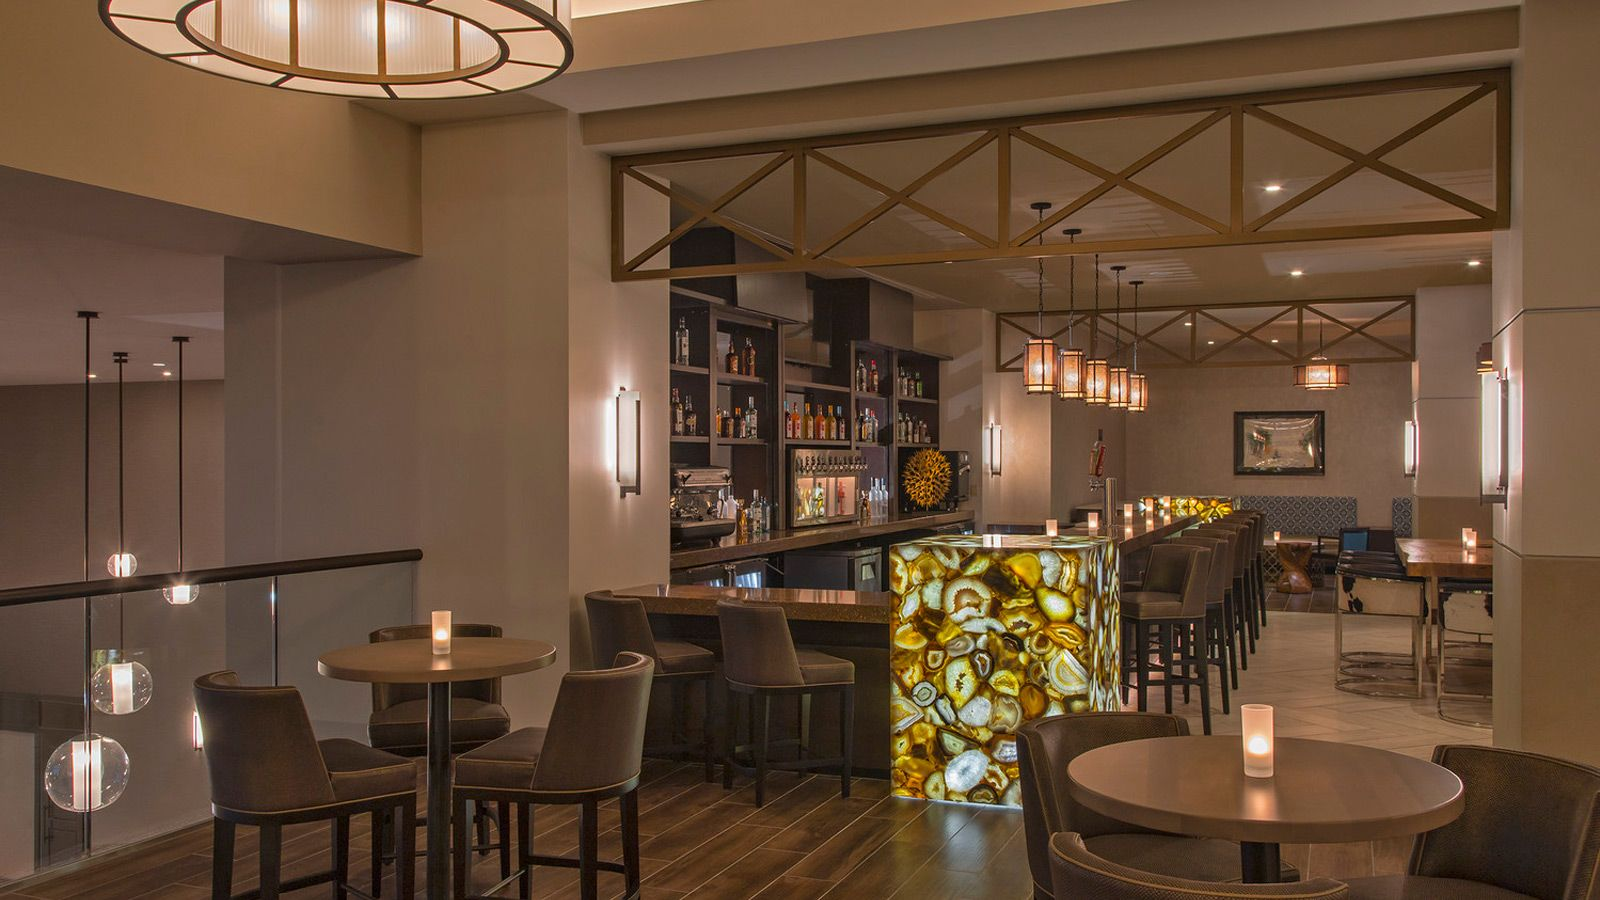 Georgetown TX Restaurants - Jack's Lounge - Sheraton Austin Georgetown Hotel & Conference Center